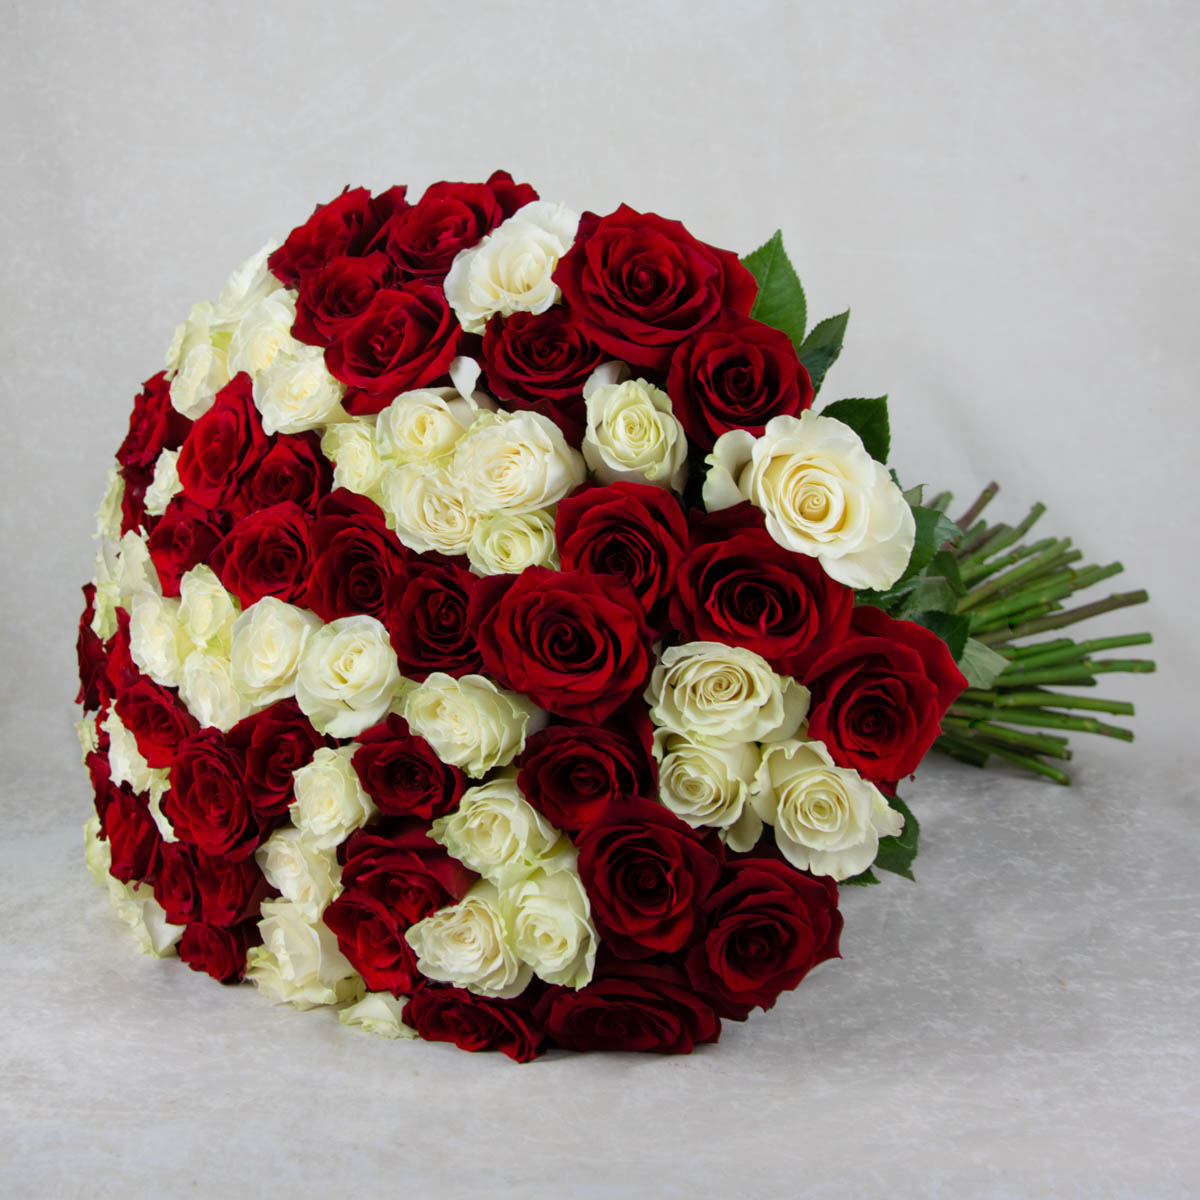 Red and White 81 roses bouquet